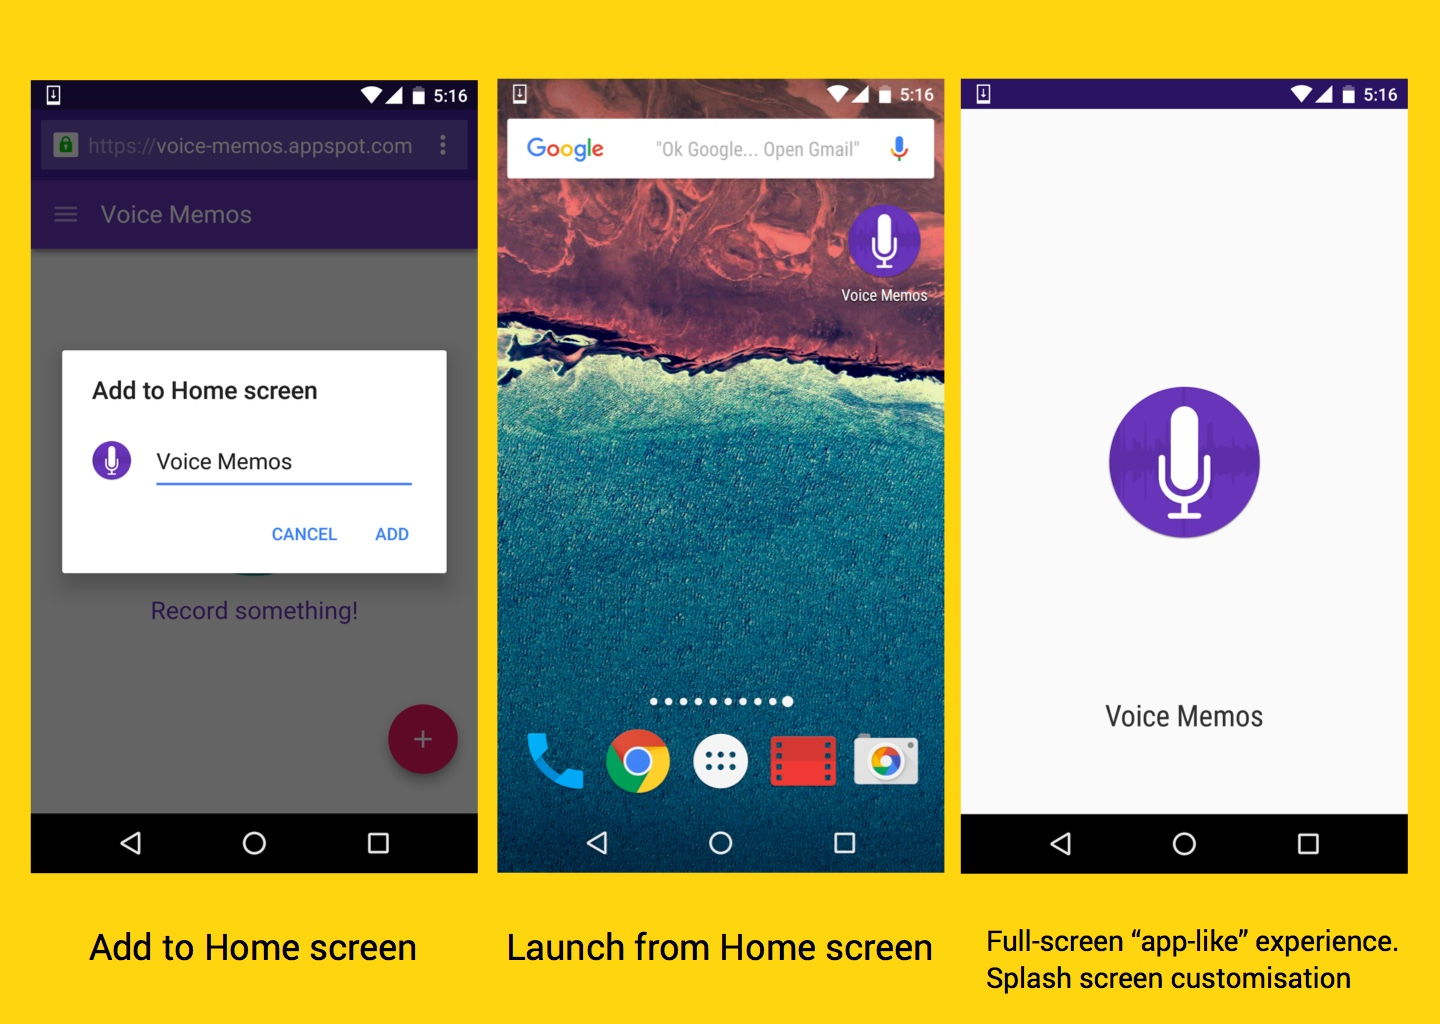 Add to homescreen, launch from homescreen and full-screen app-like experiences.